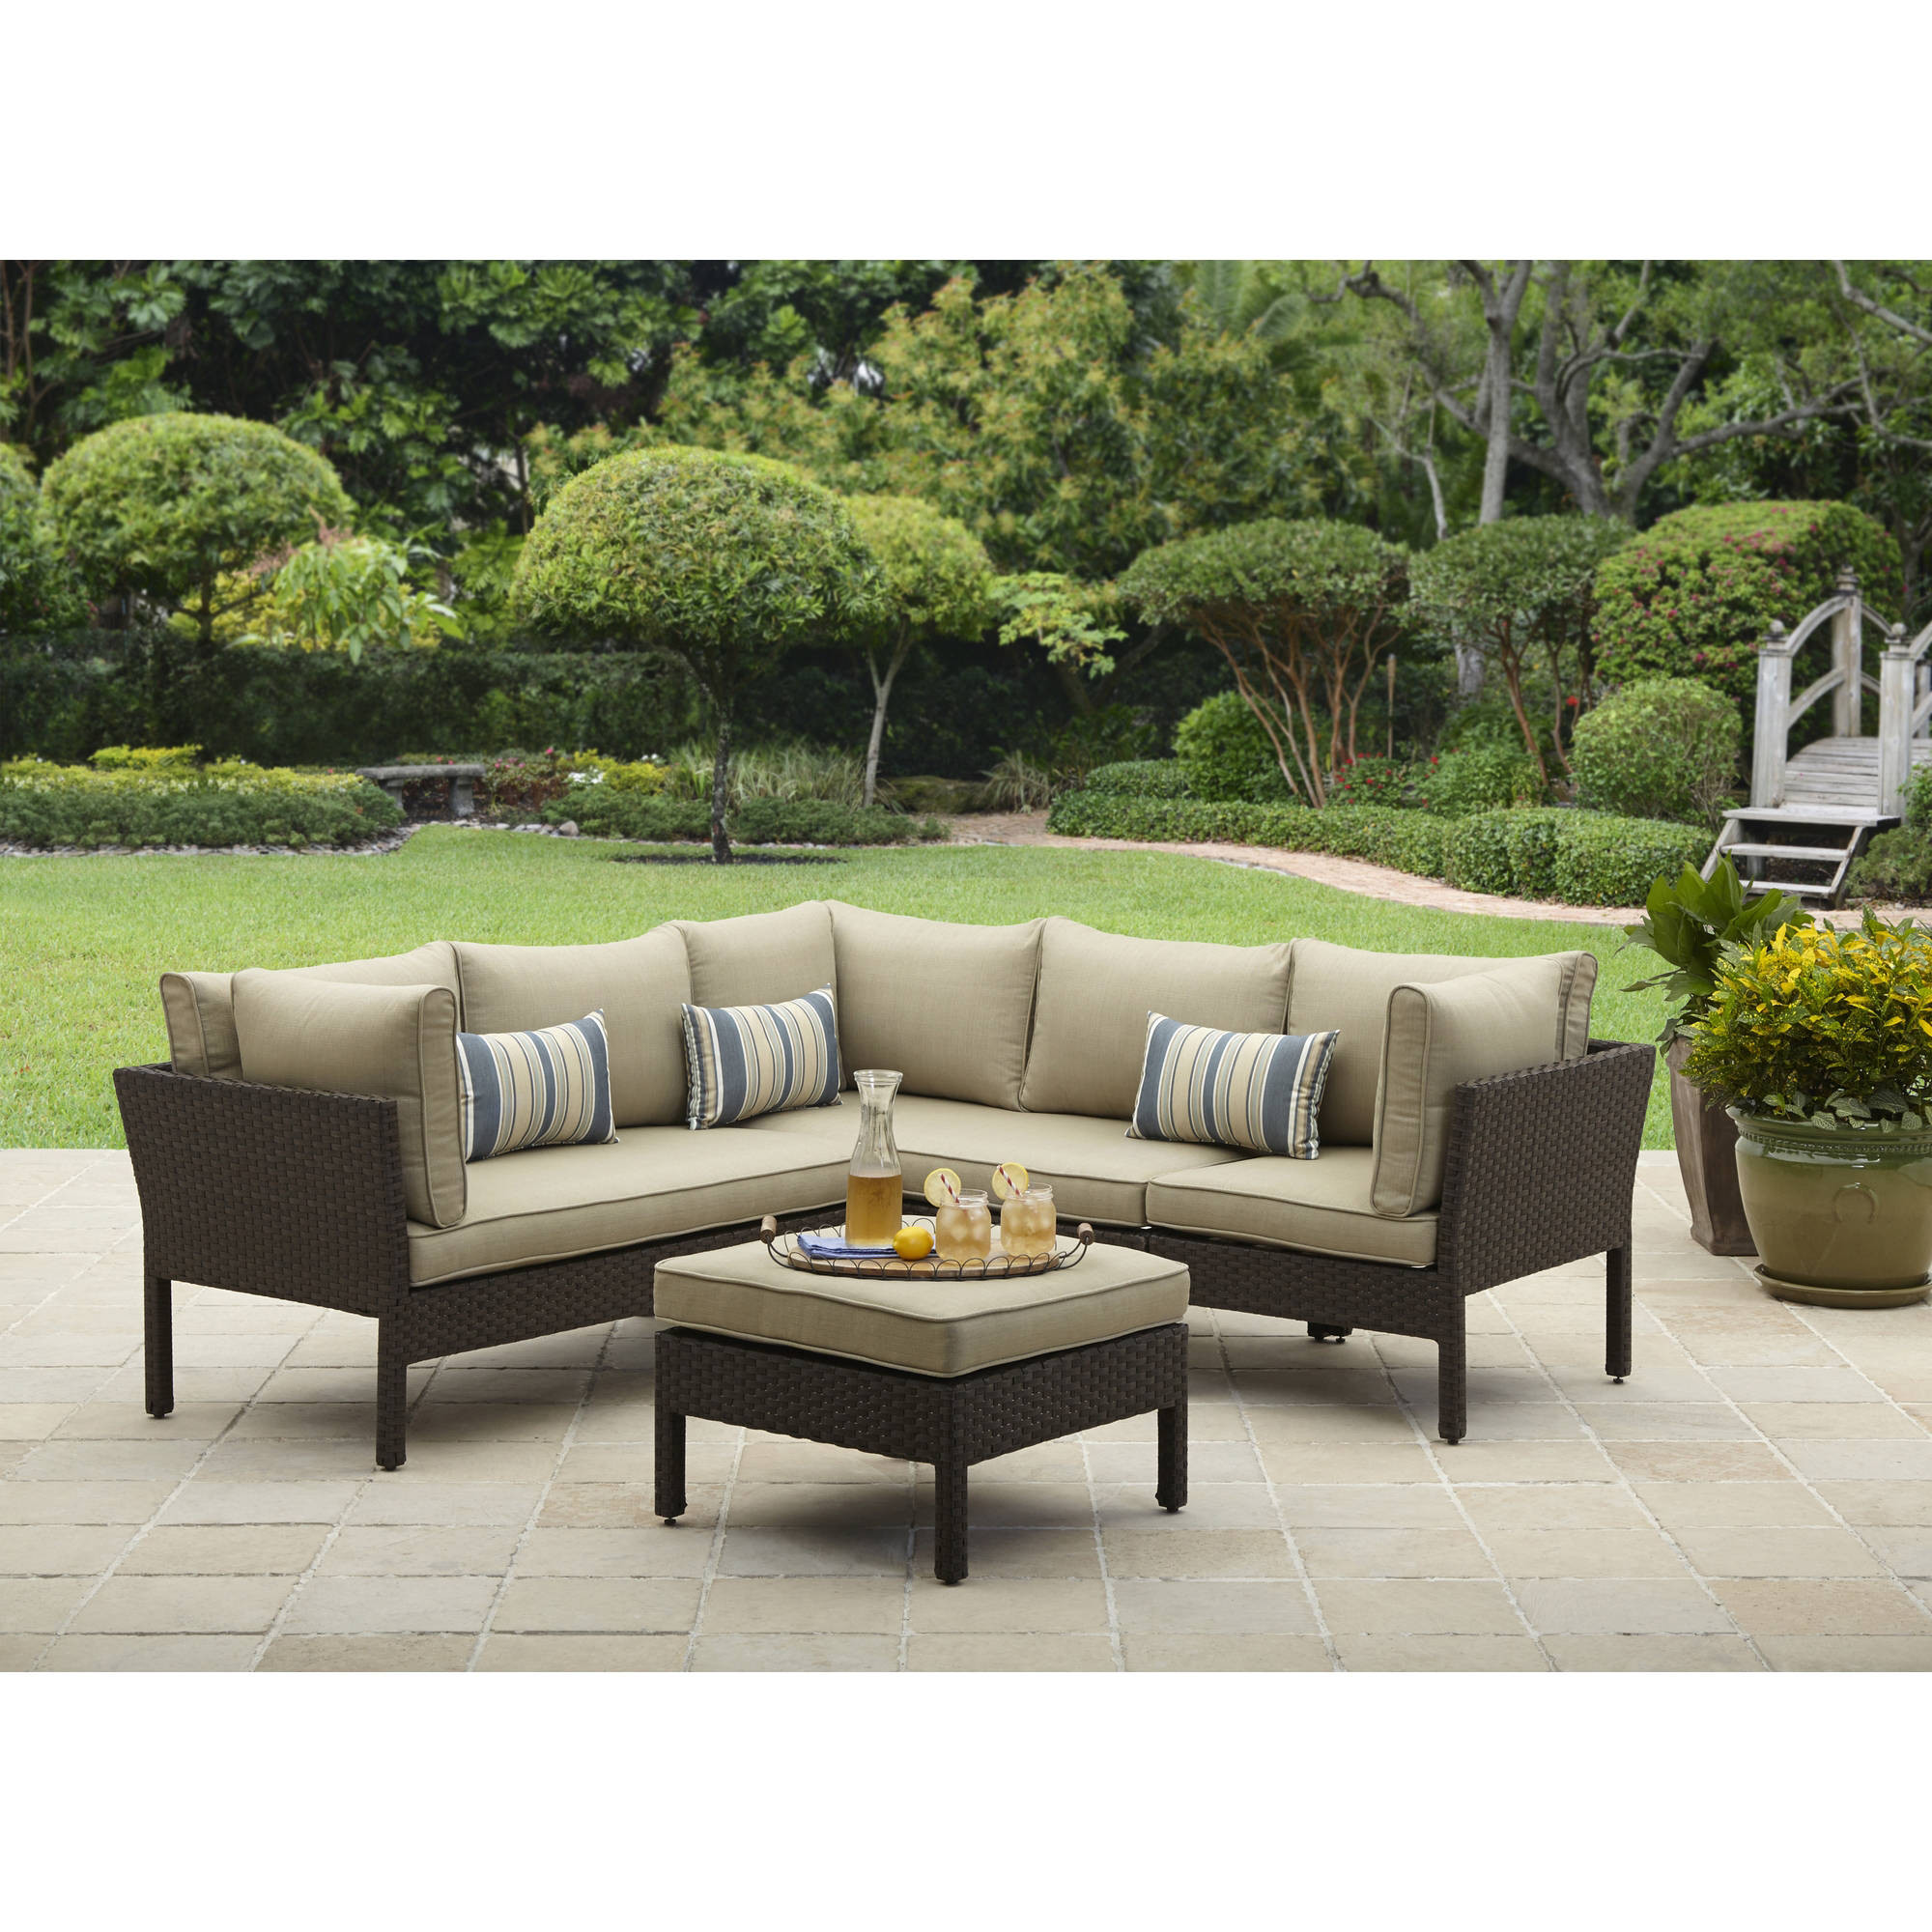 Best ideas about Patio Furniture Walmart . Save or Pin Outdoor Sectional Sofas Walmart Now.